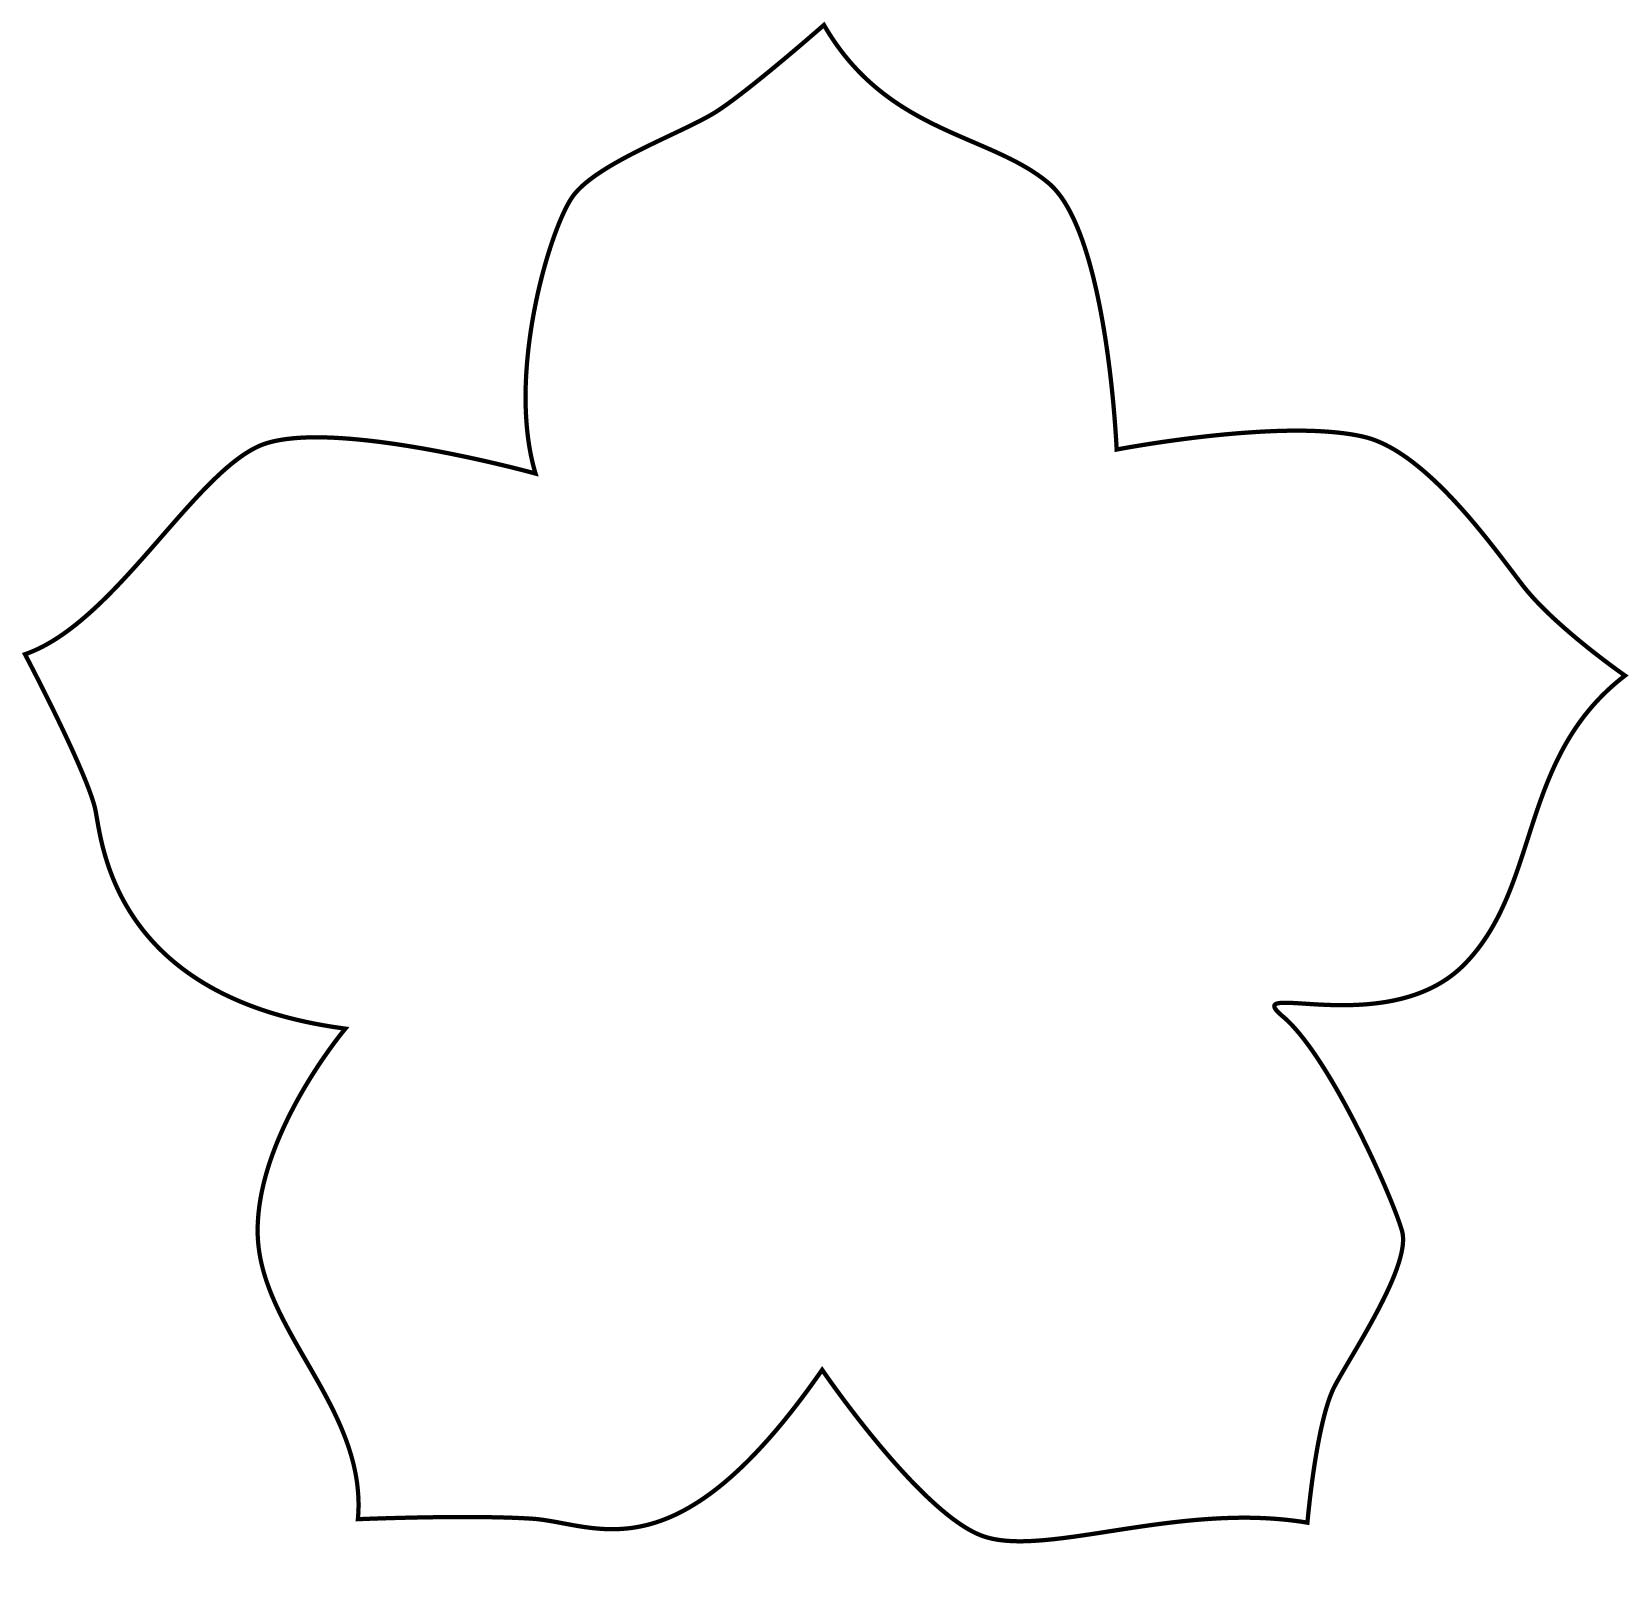 10 Petal Flower Template Demirediffusion